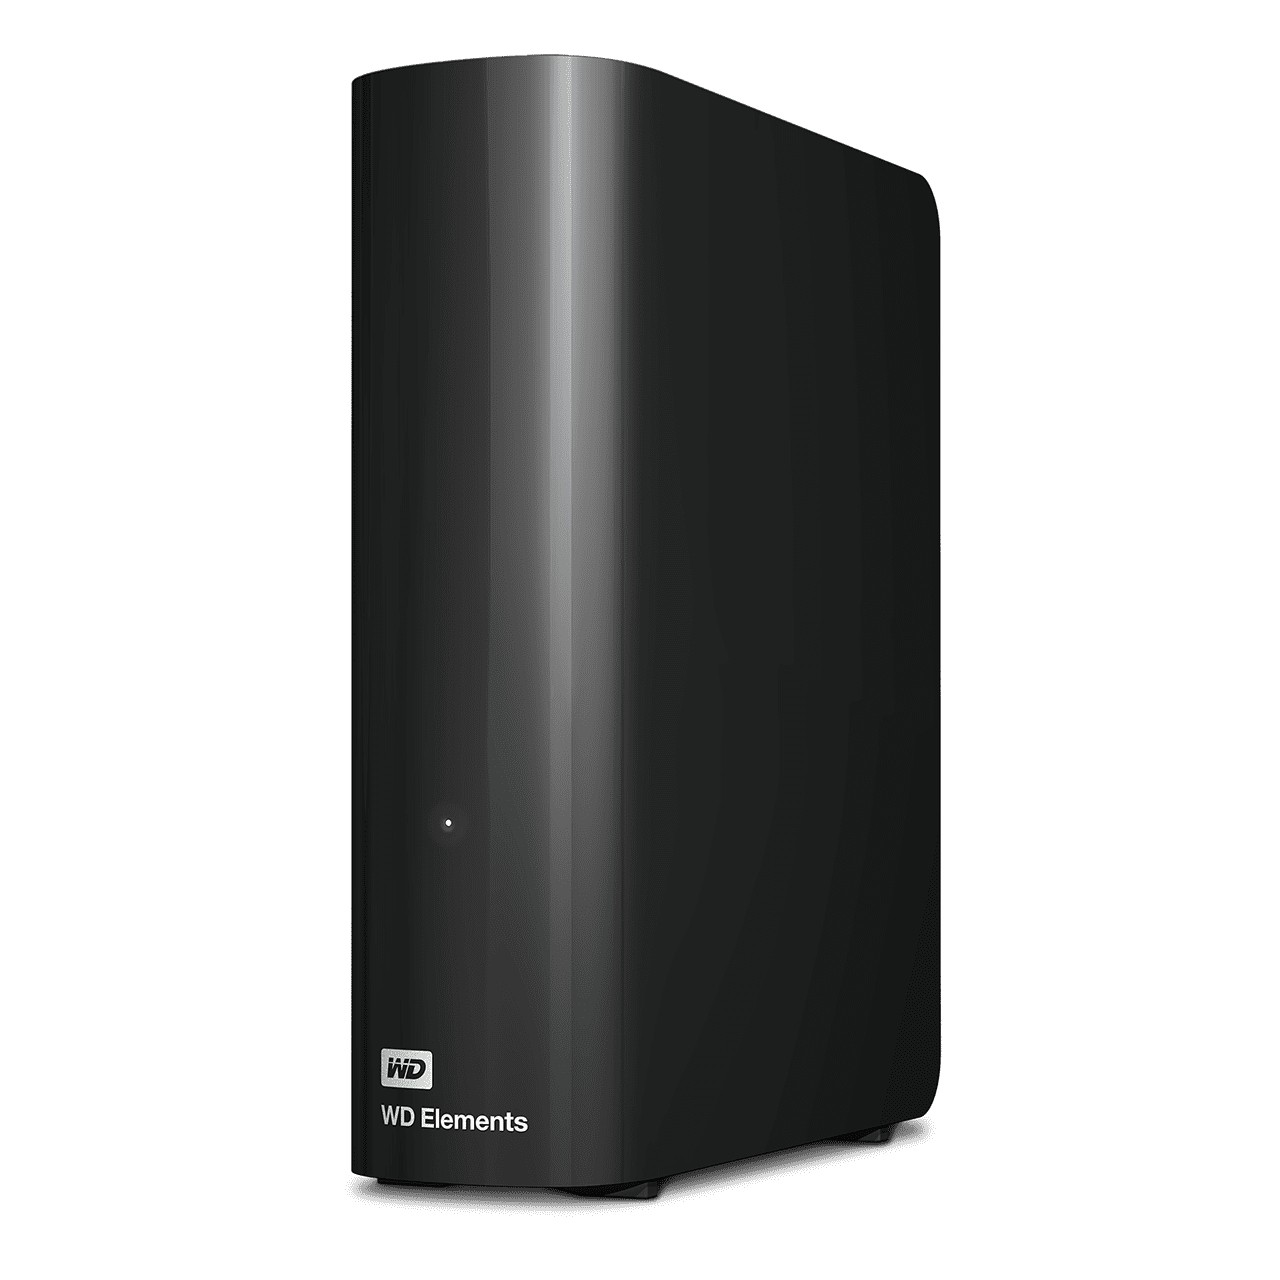 "HDD ext WD 14TB crna, Elements Desktop, WDBWLG0140HBK-EESN, 3.5"", USB3.0, 24mj"